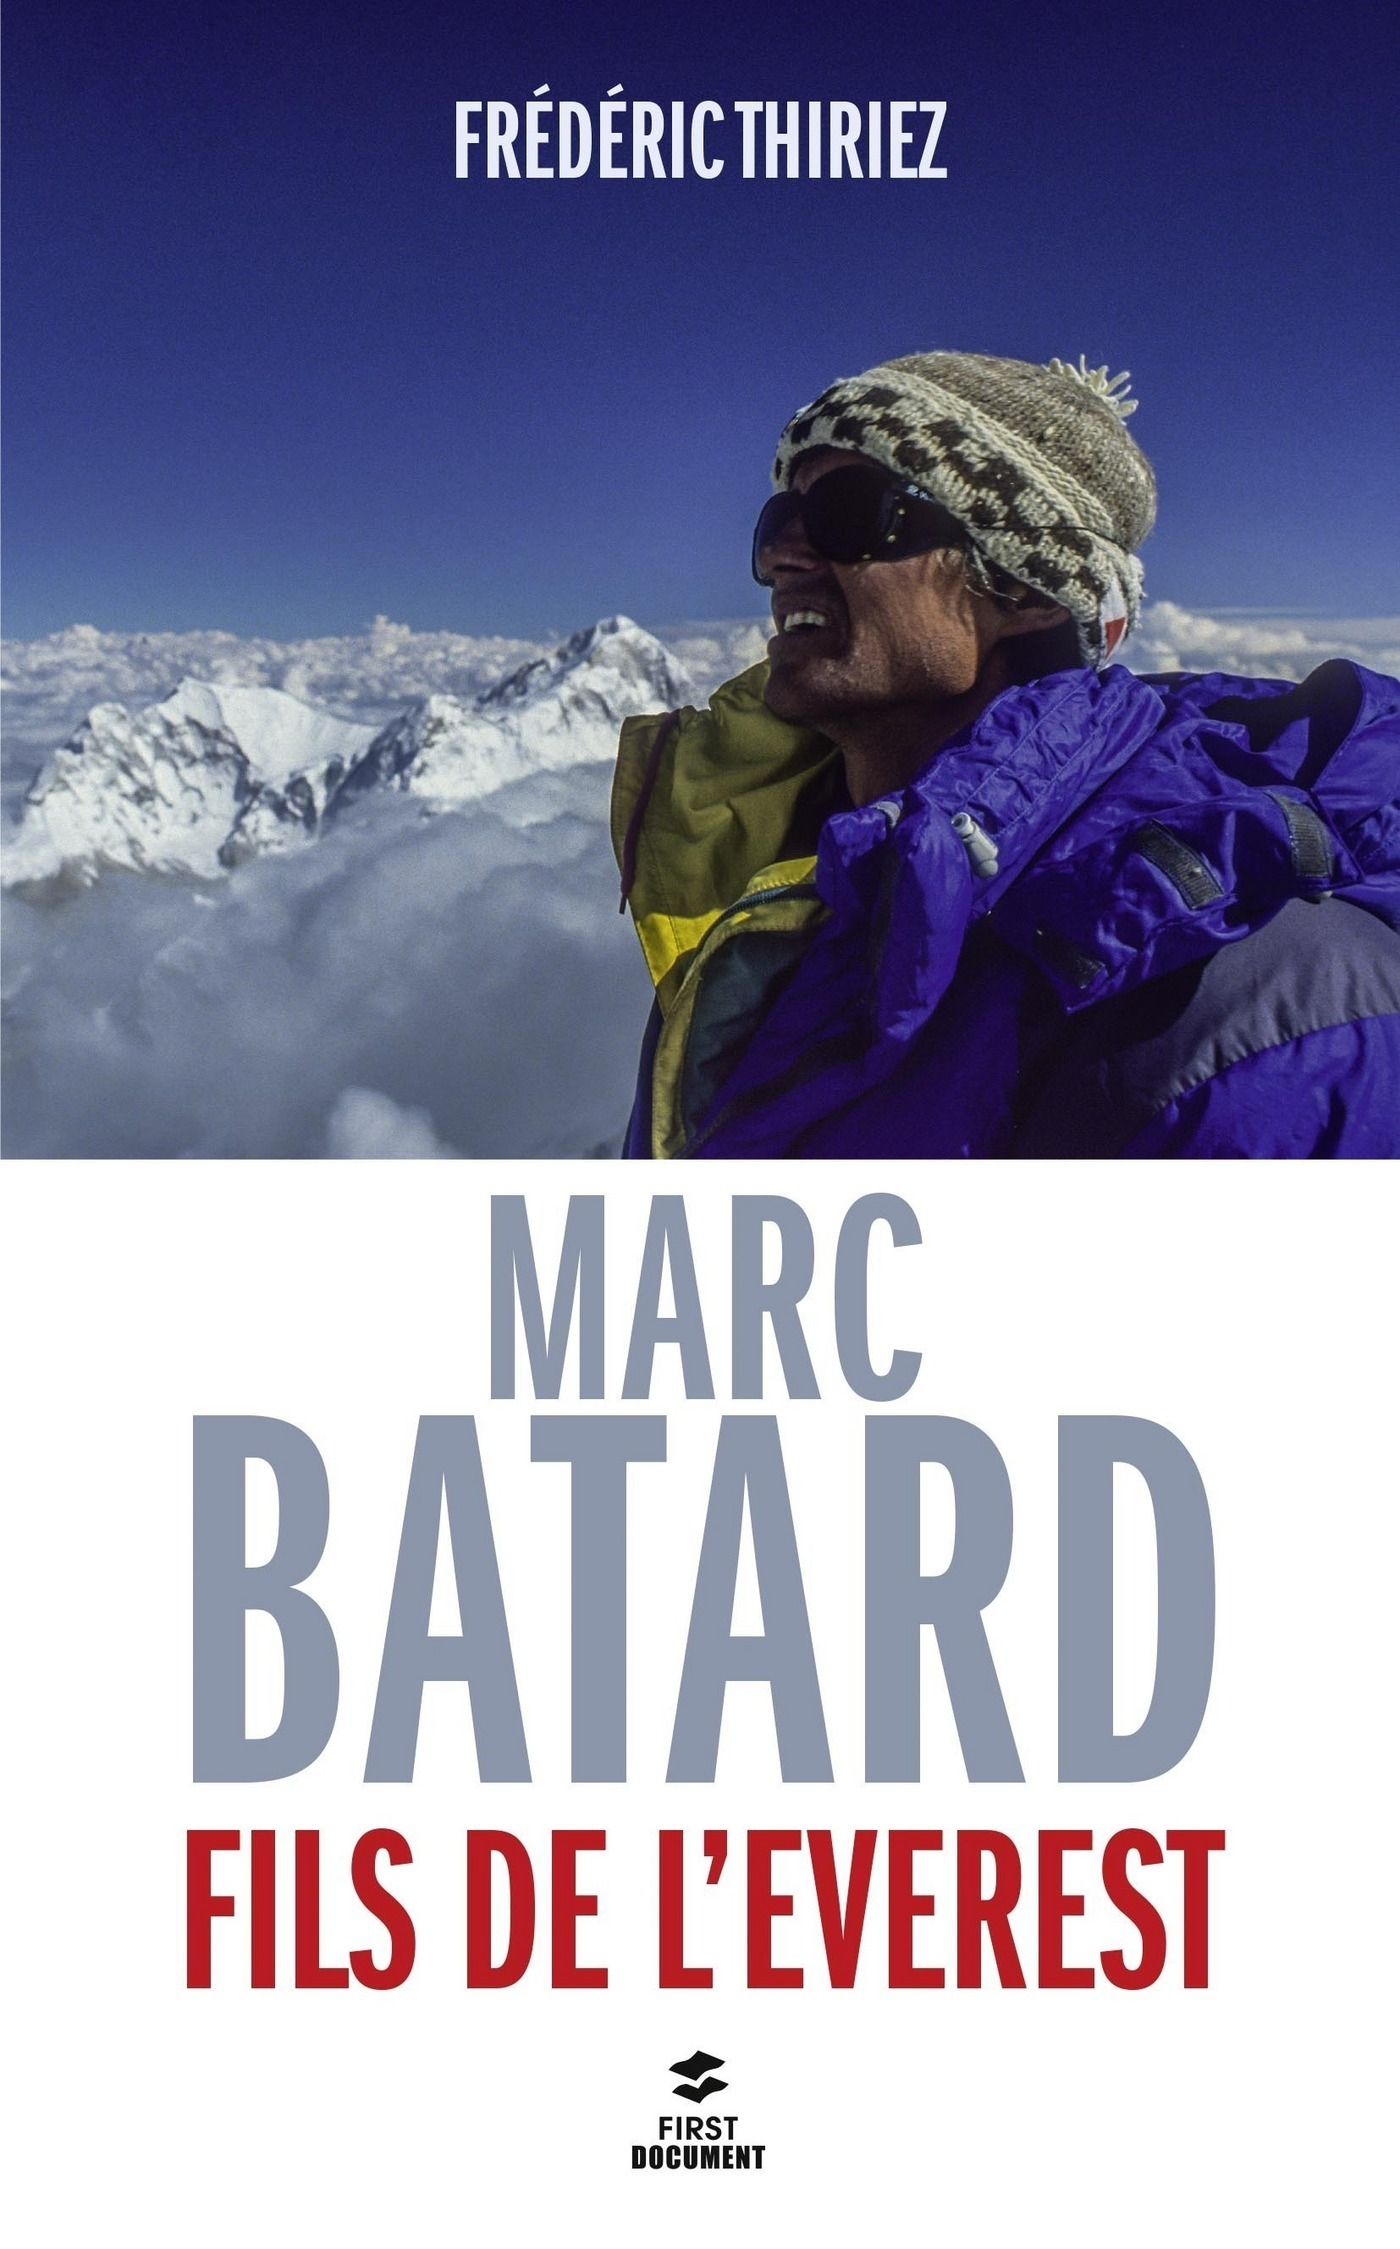 Marc Batard, fils de l'Everest